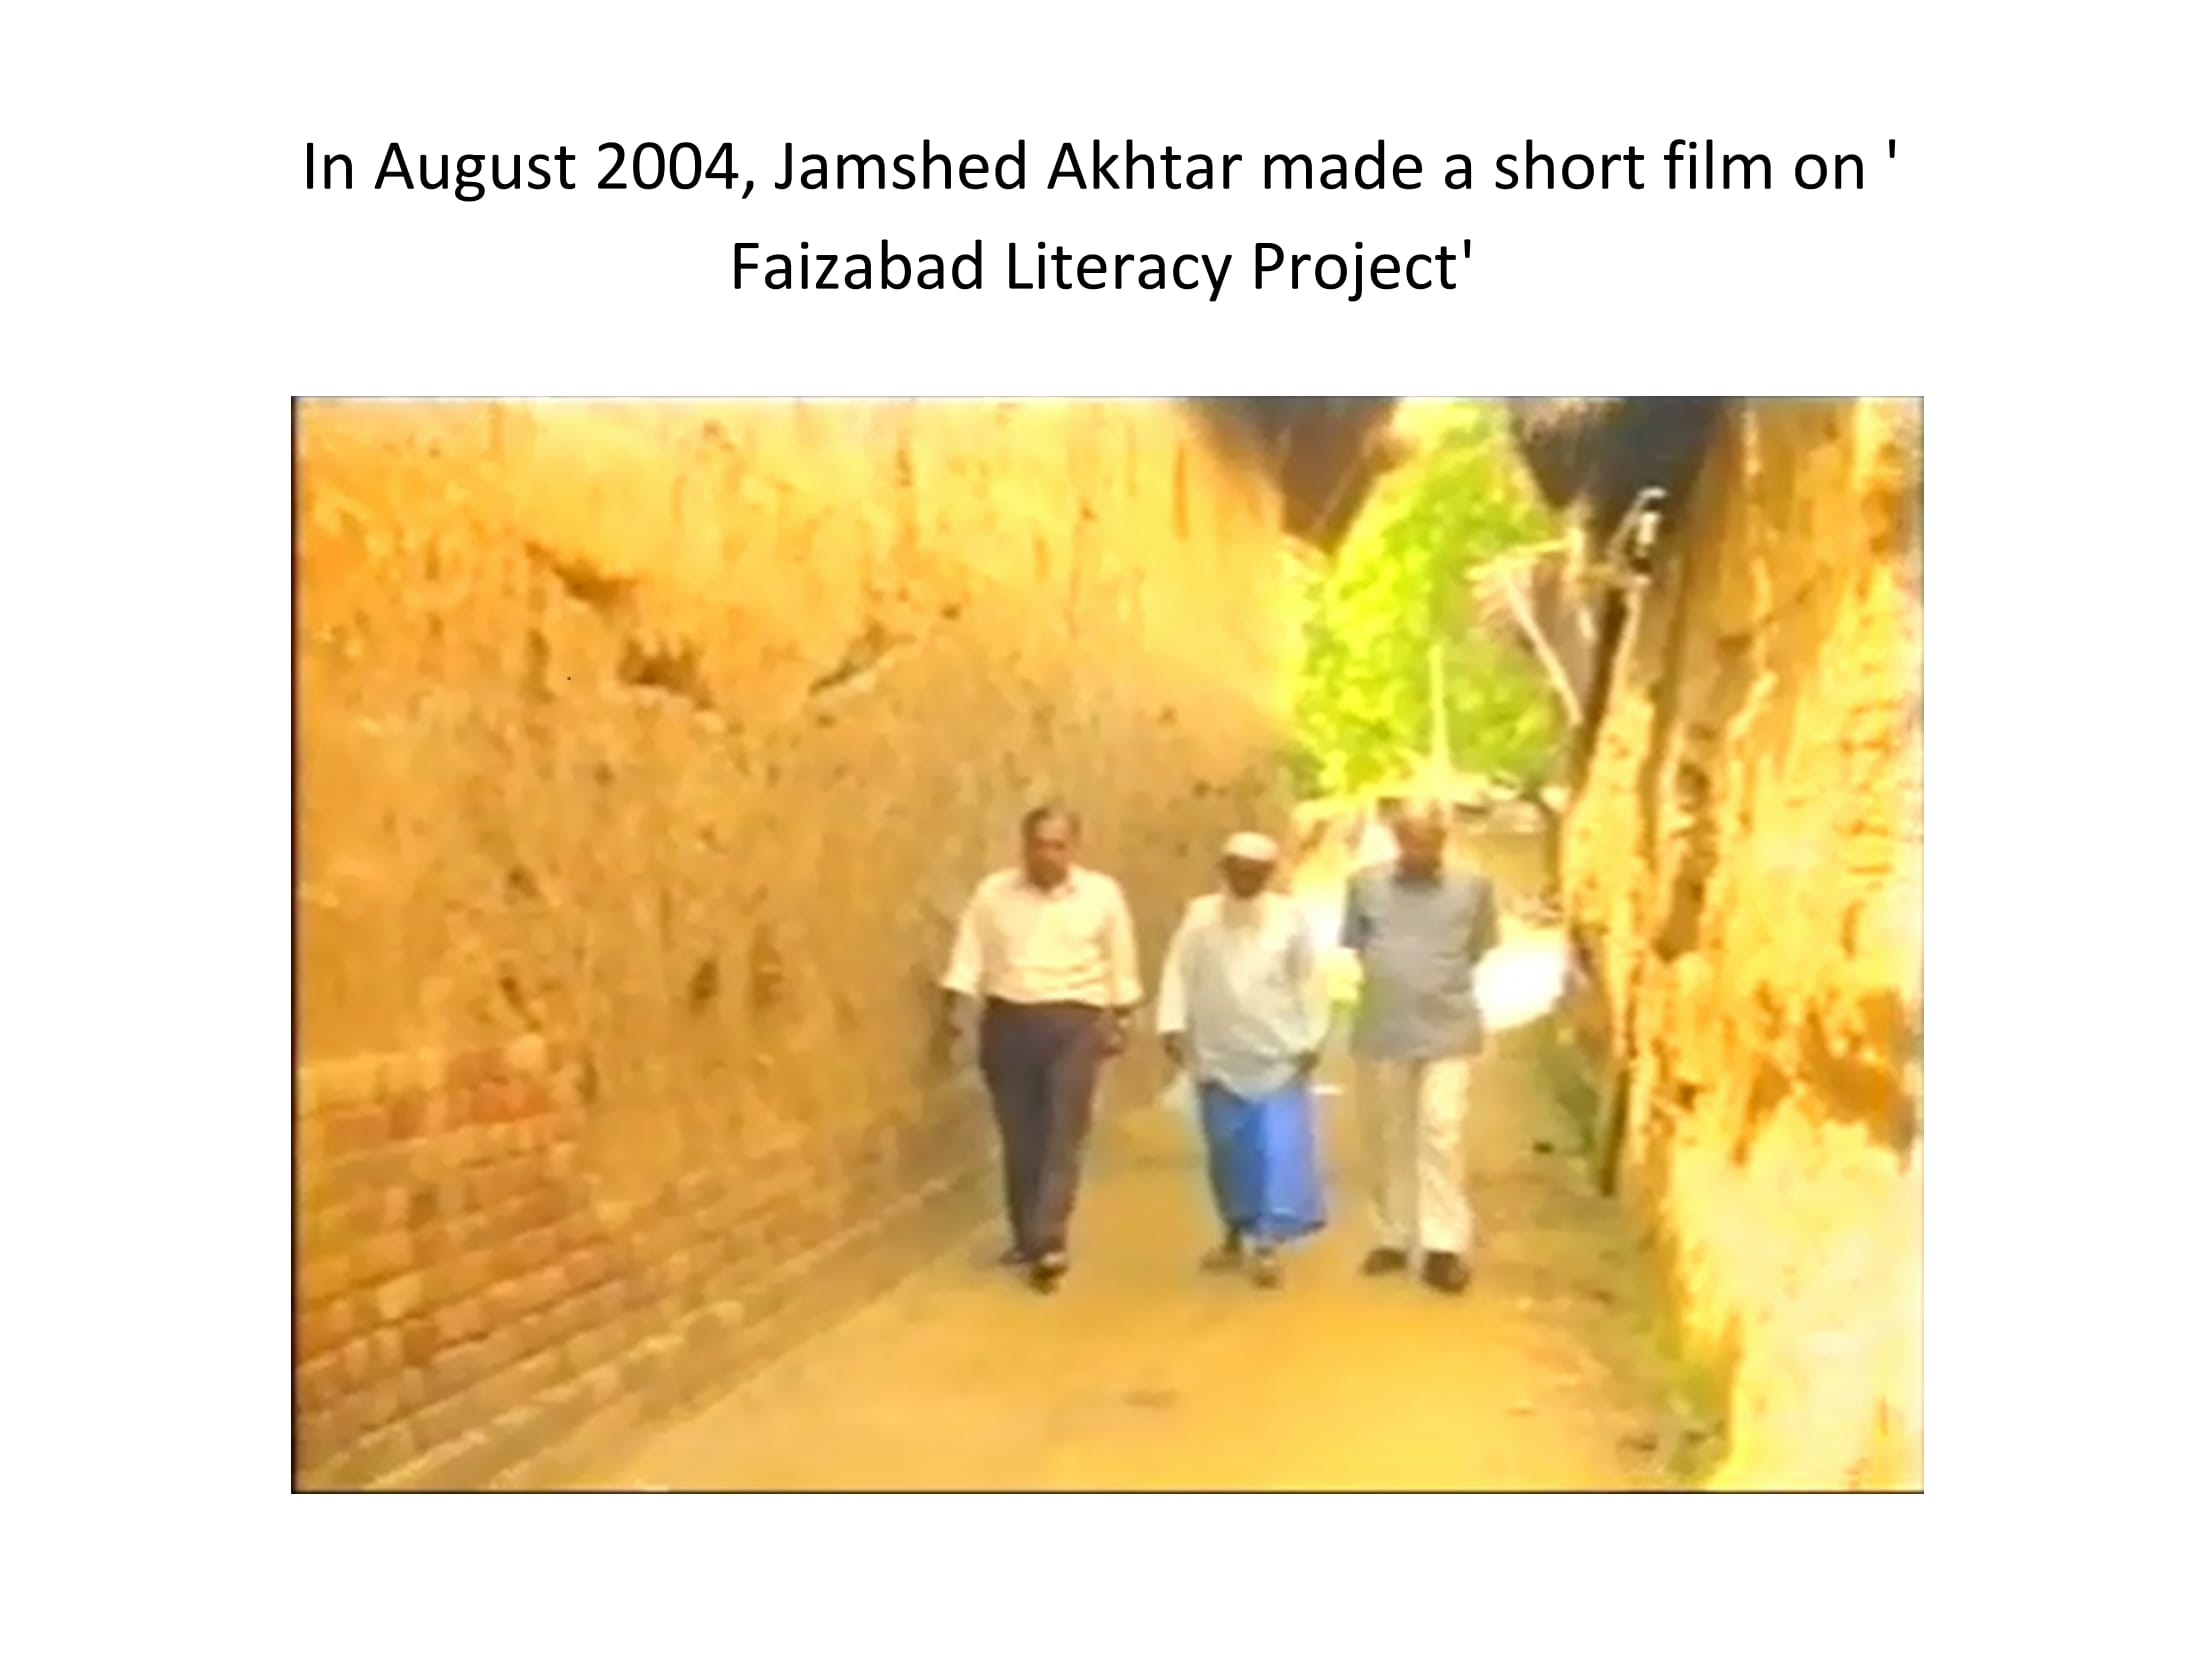 Faizabad Literacy Project